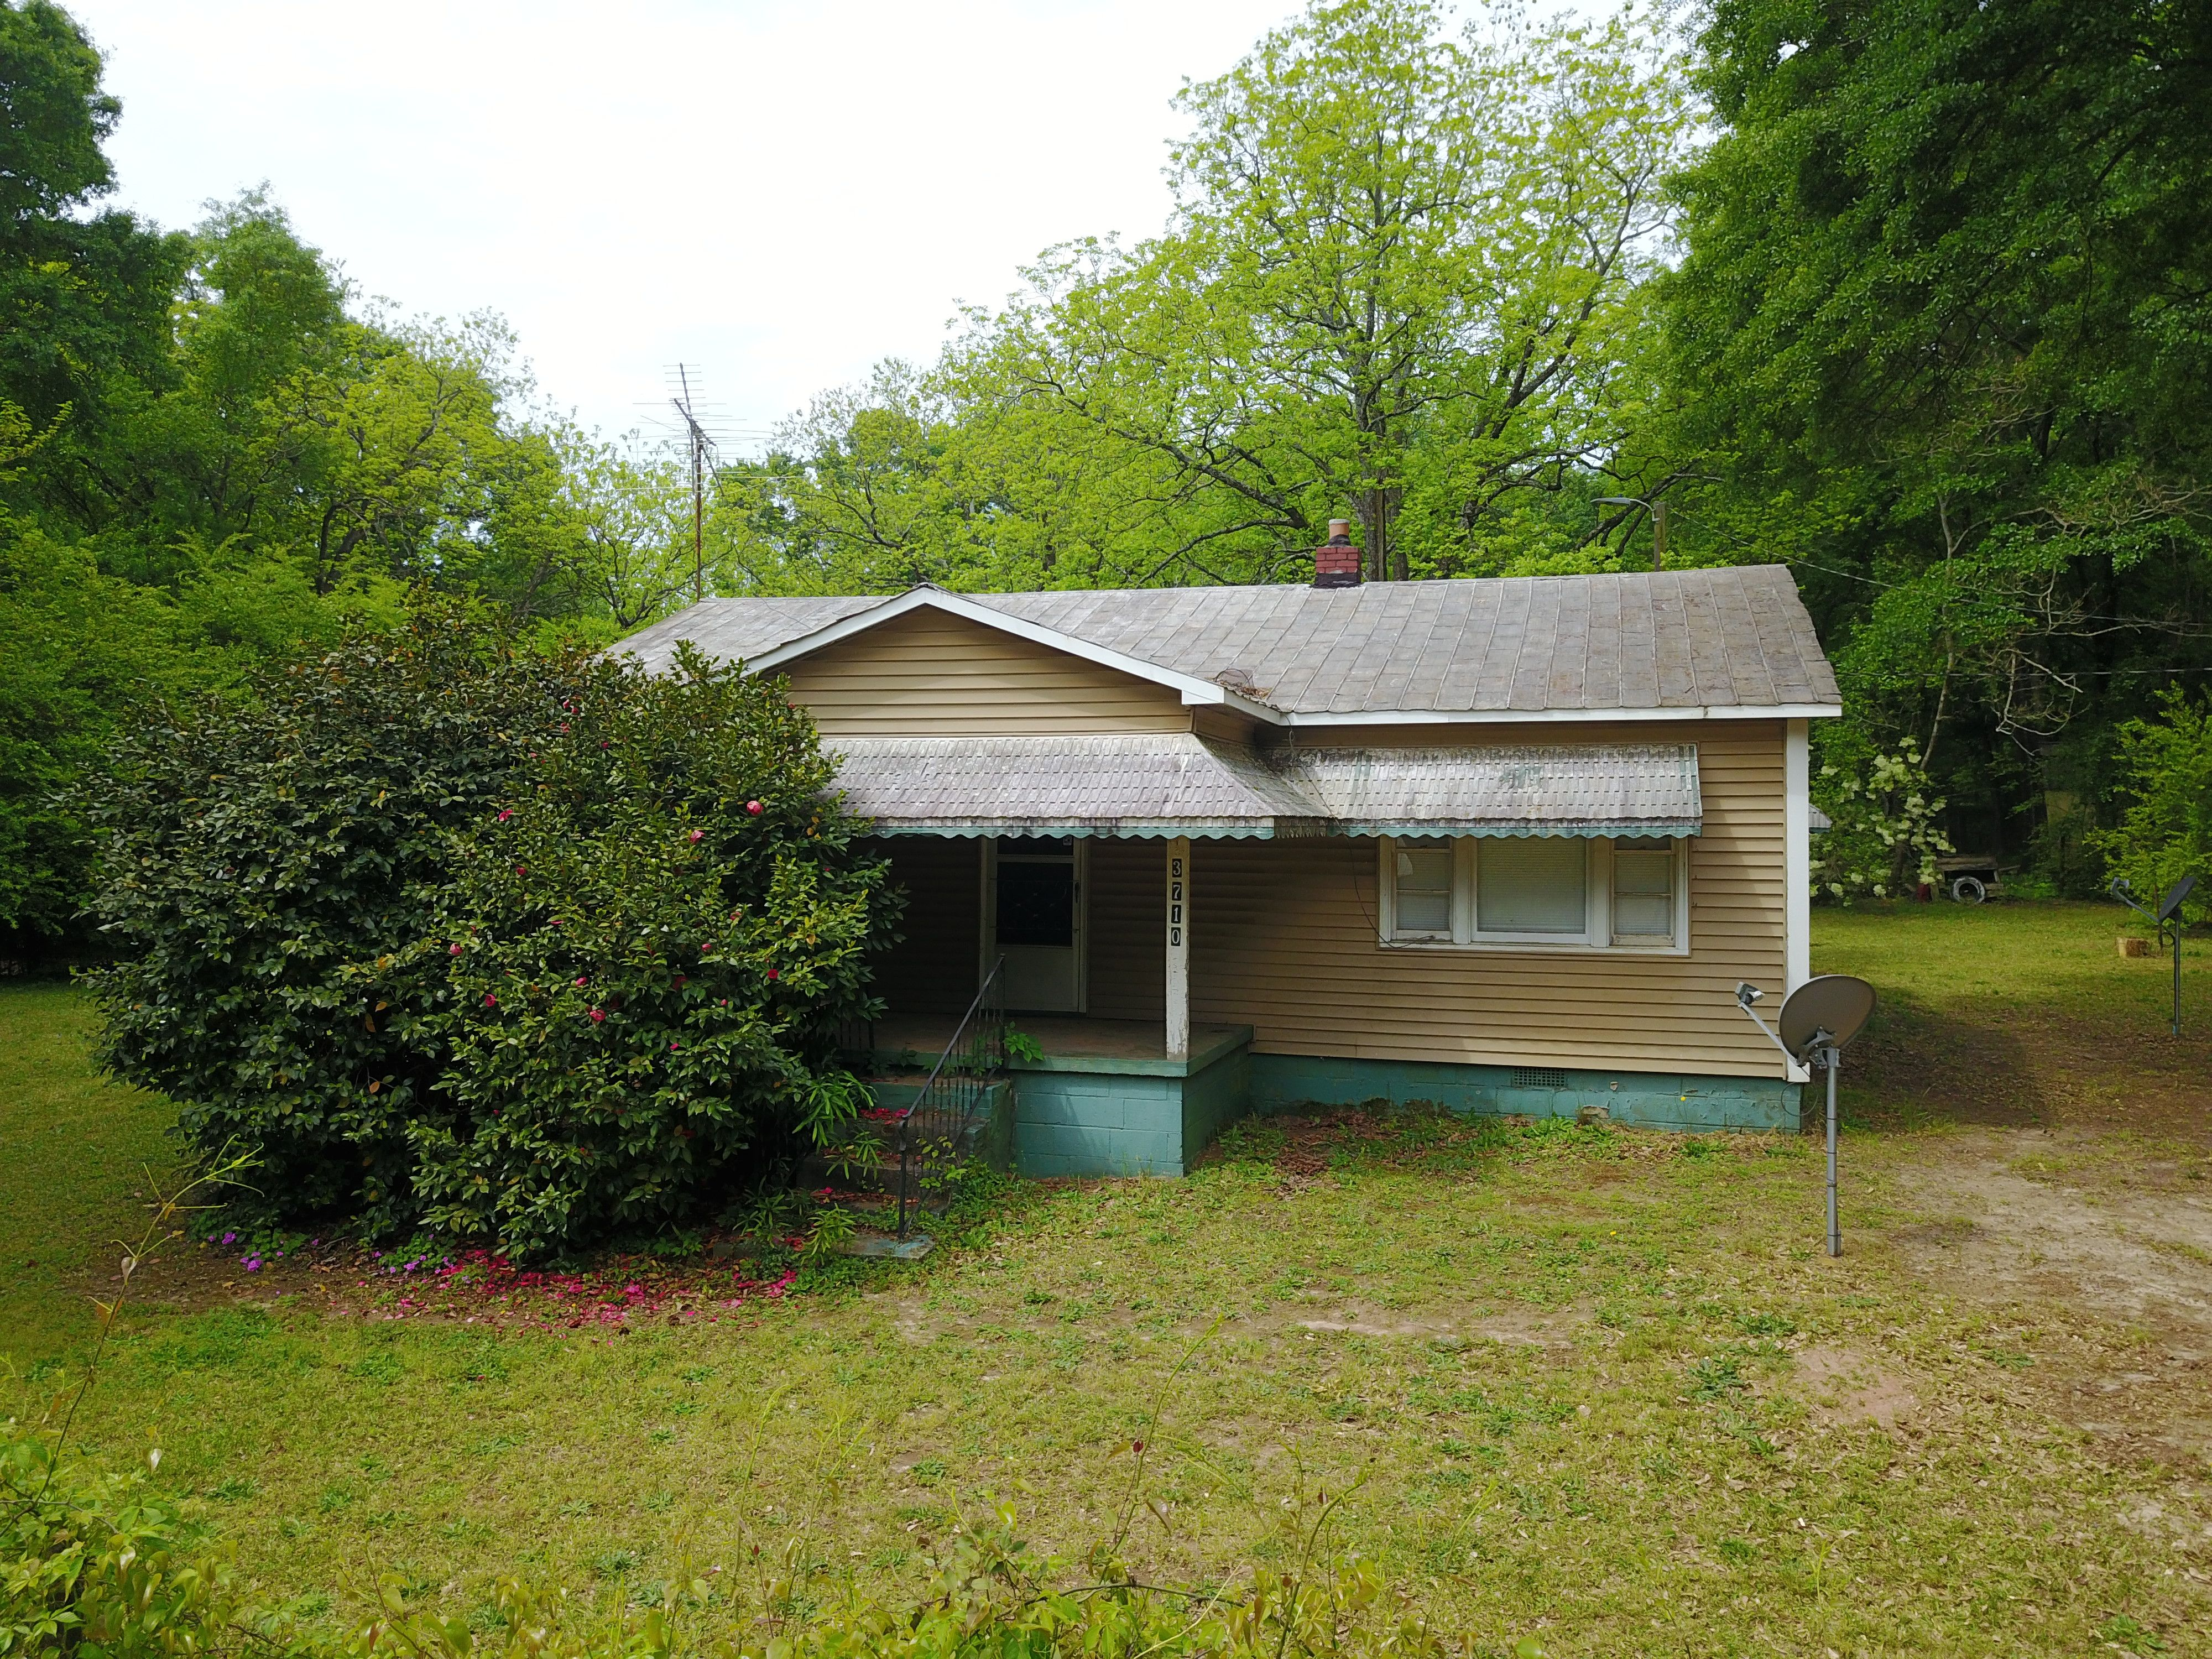 3710 Mabry St, Anderson, SC